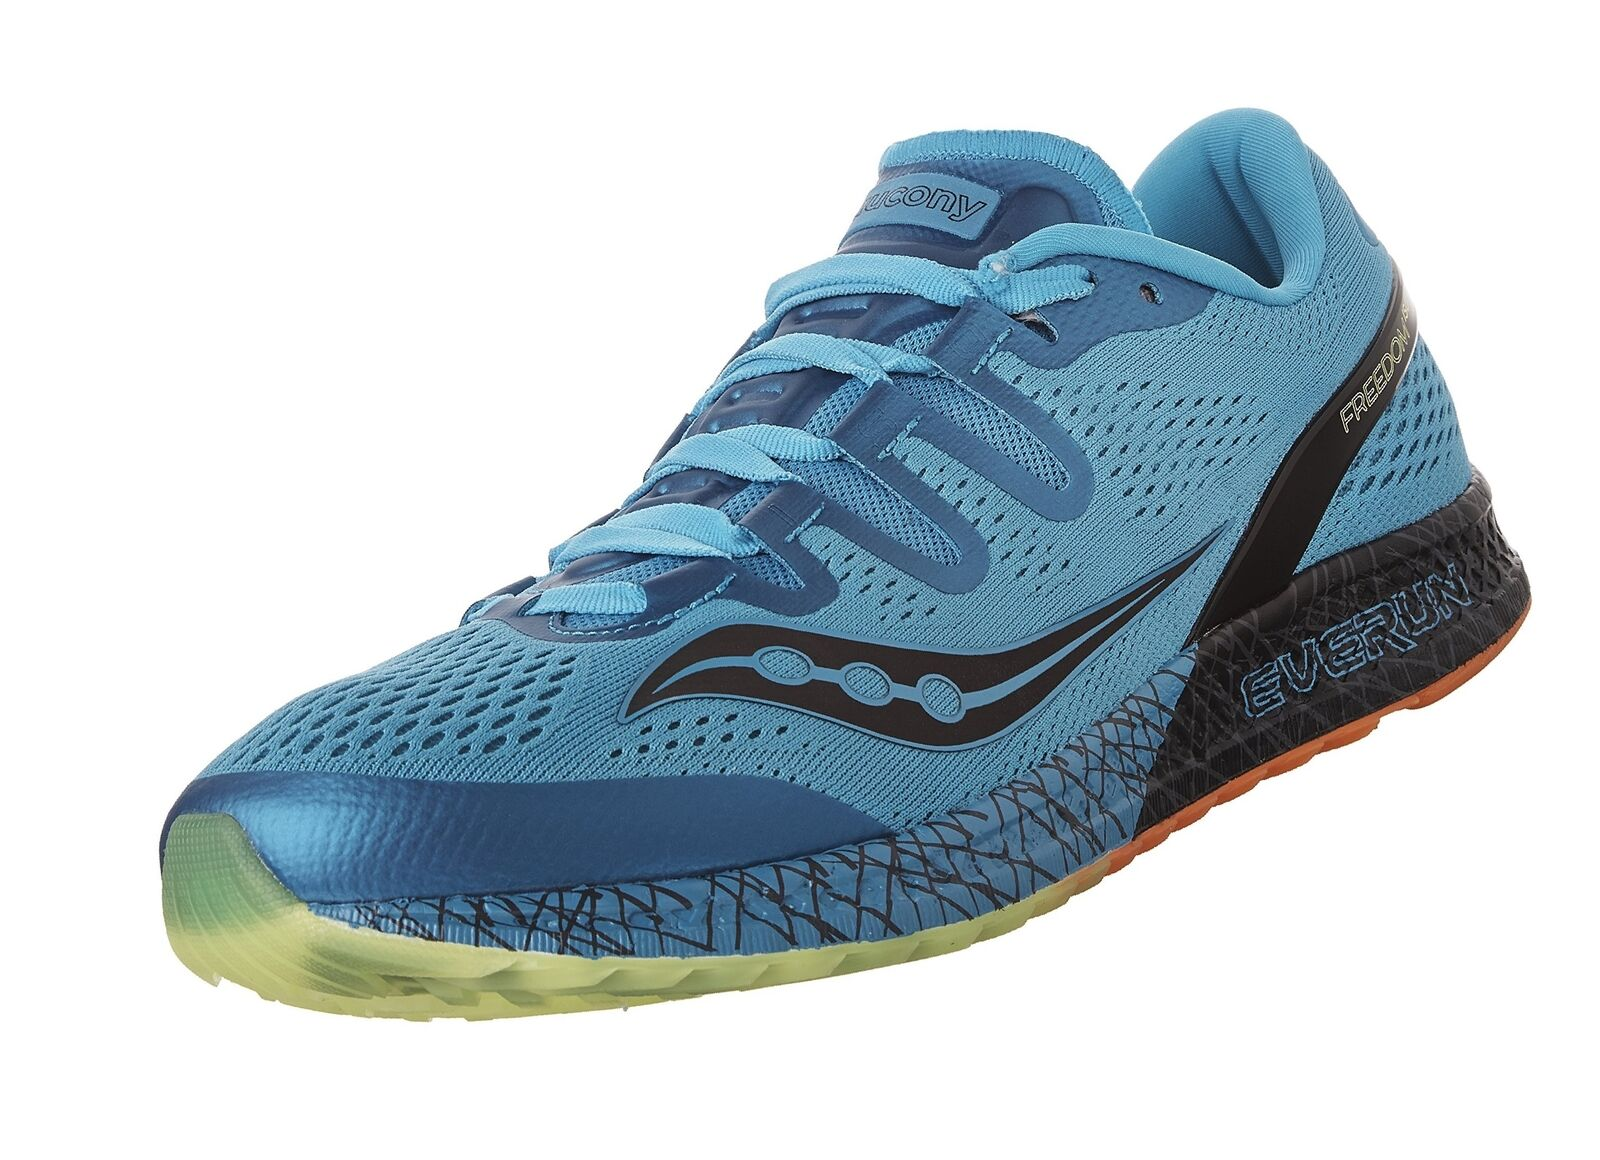 Saucony Men's Freedom ISO Running shoes bluee Citron 13 M US